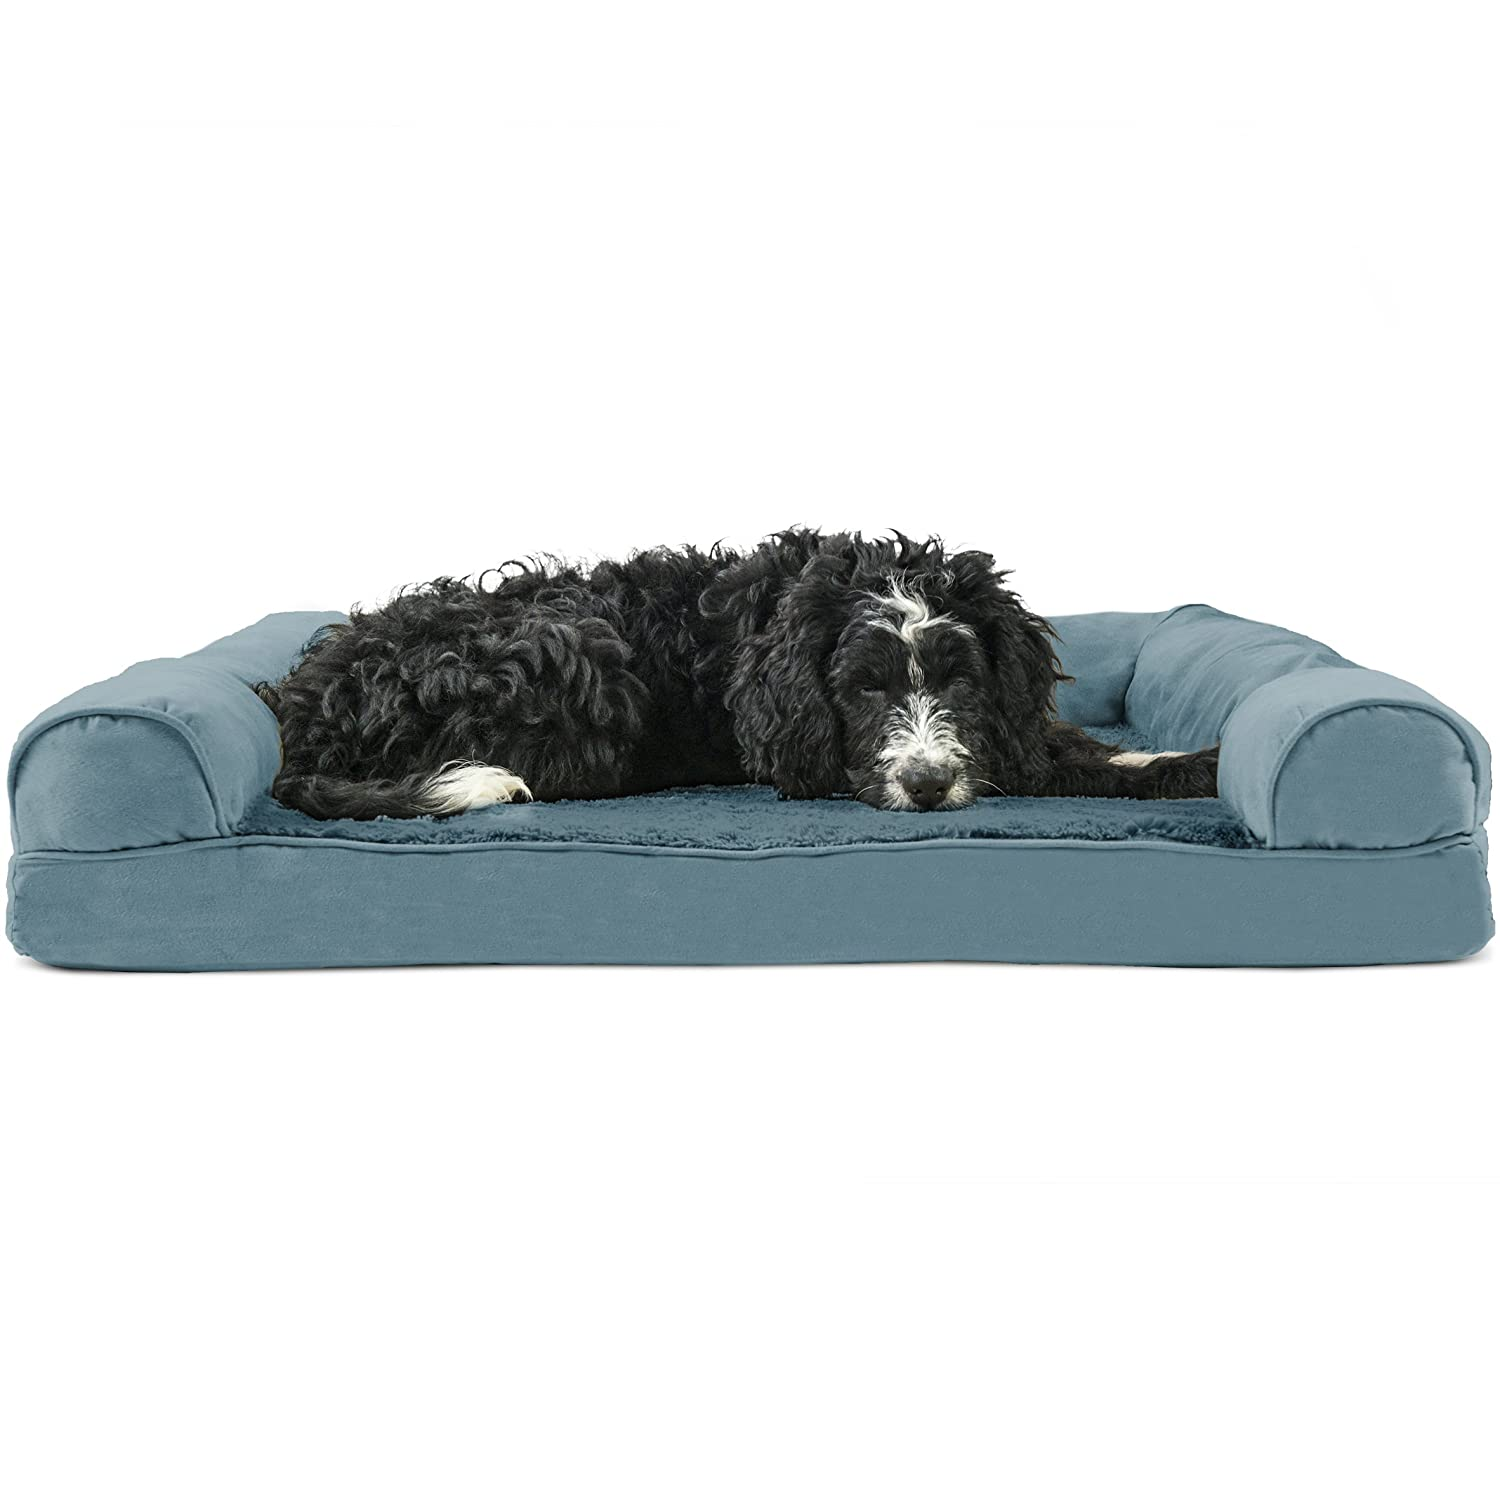 FurHaven Pet Dog Bed | Orthopedic Ultra Plush Sofa-Style Couch Pet Bed for Dogs & Cats - Available in 4 Colors & Sizes Clay Jumbo Furhaven Pet Products Inc.